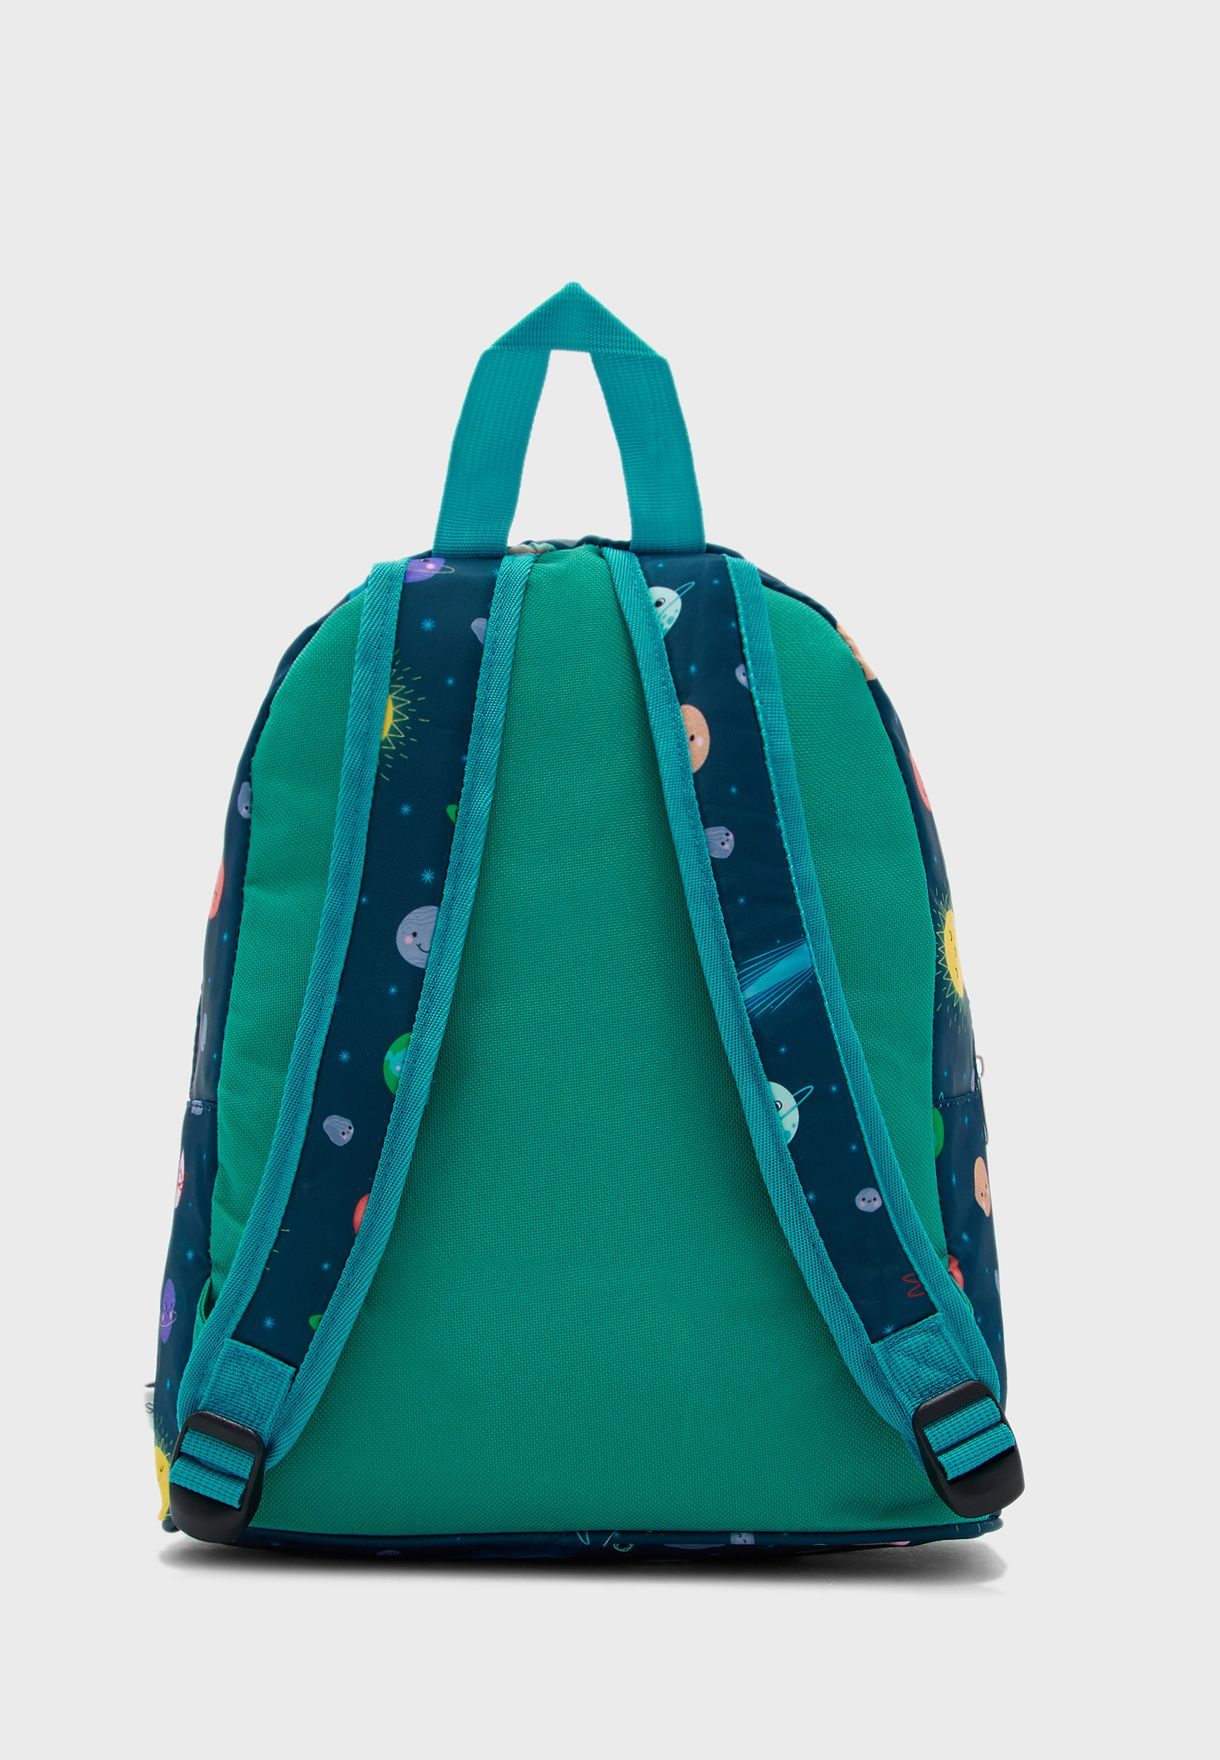 Space Explorer Backpack